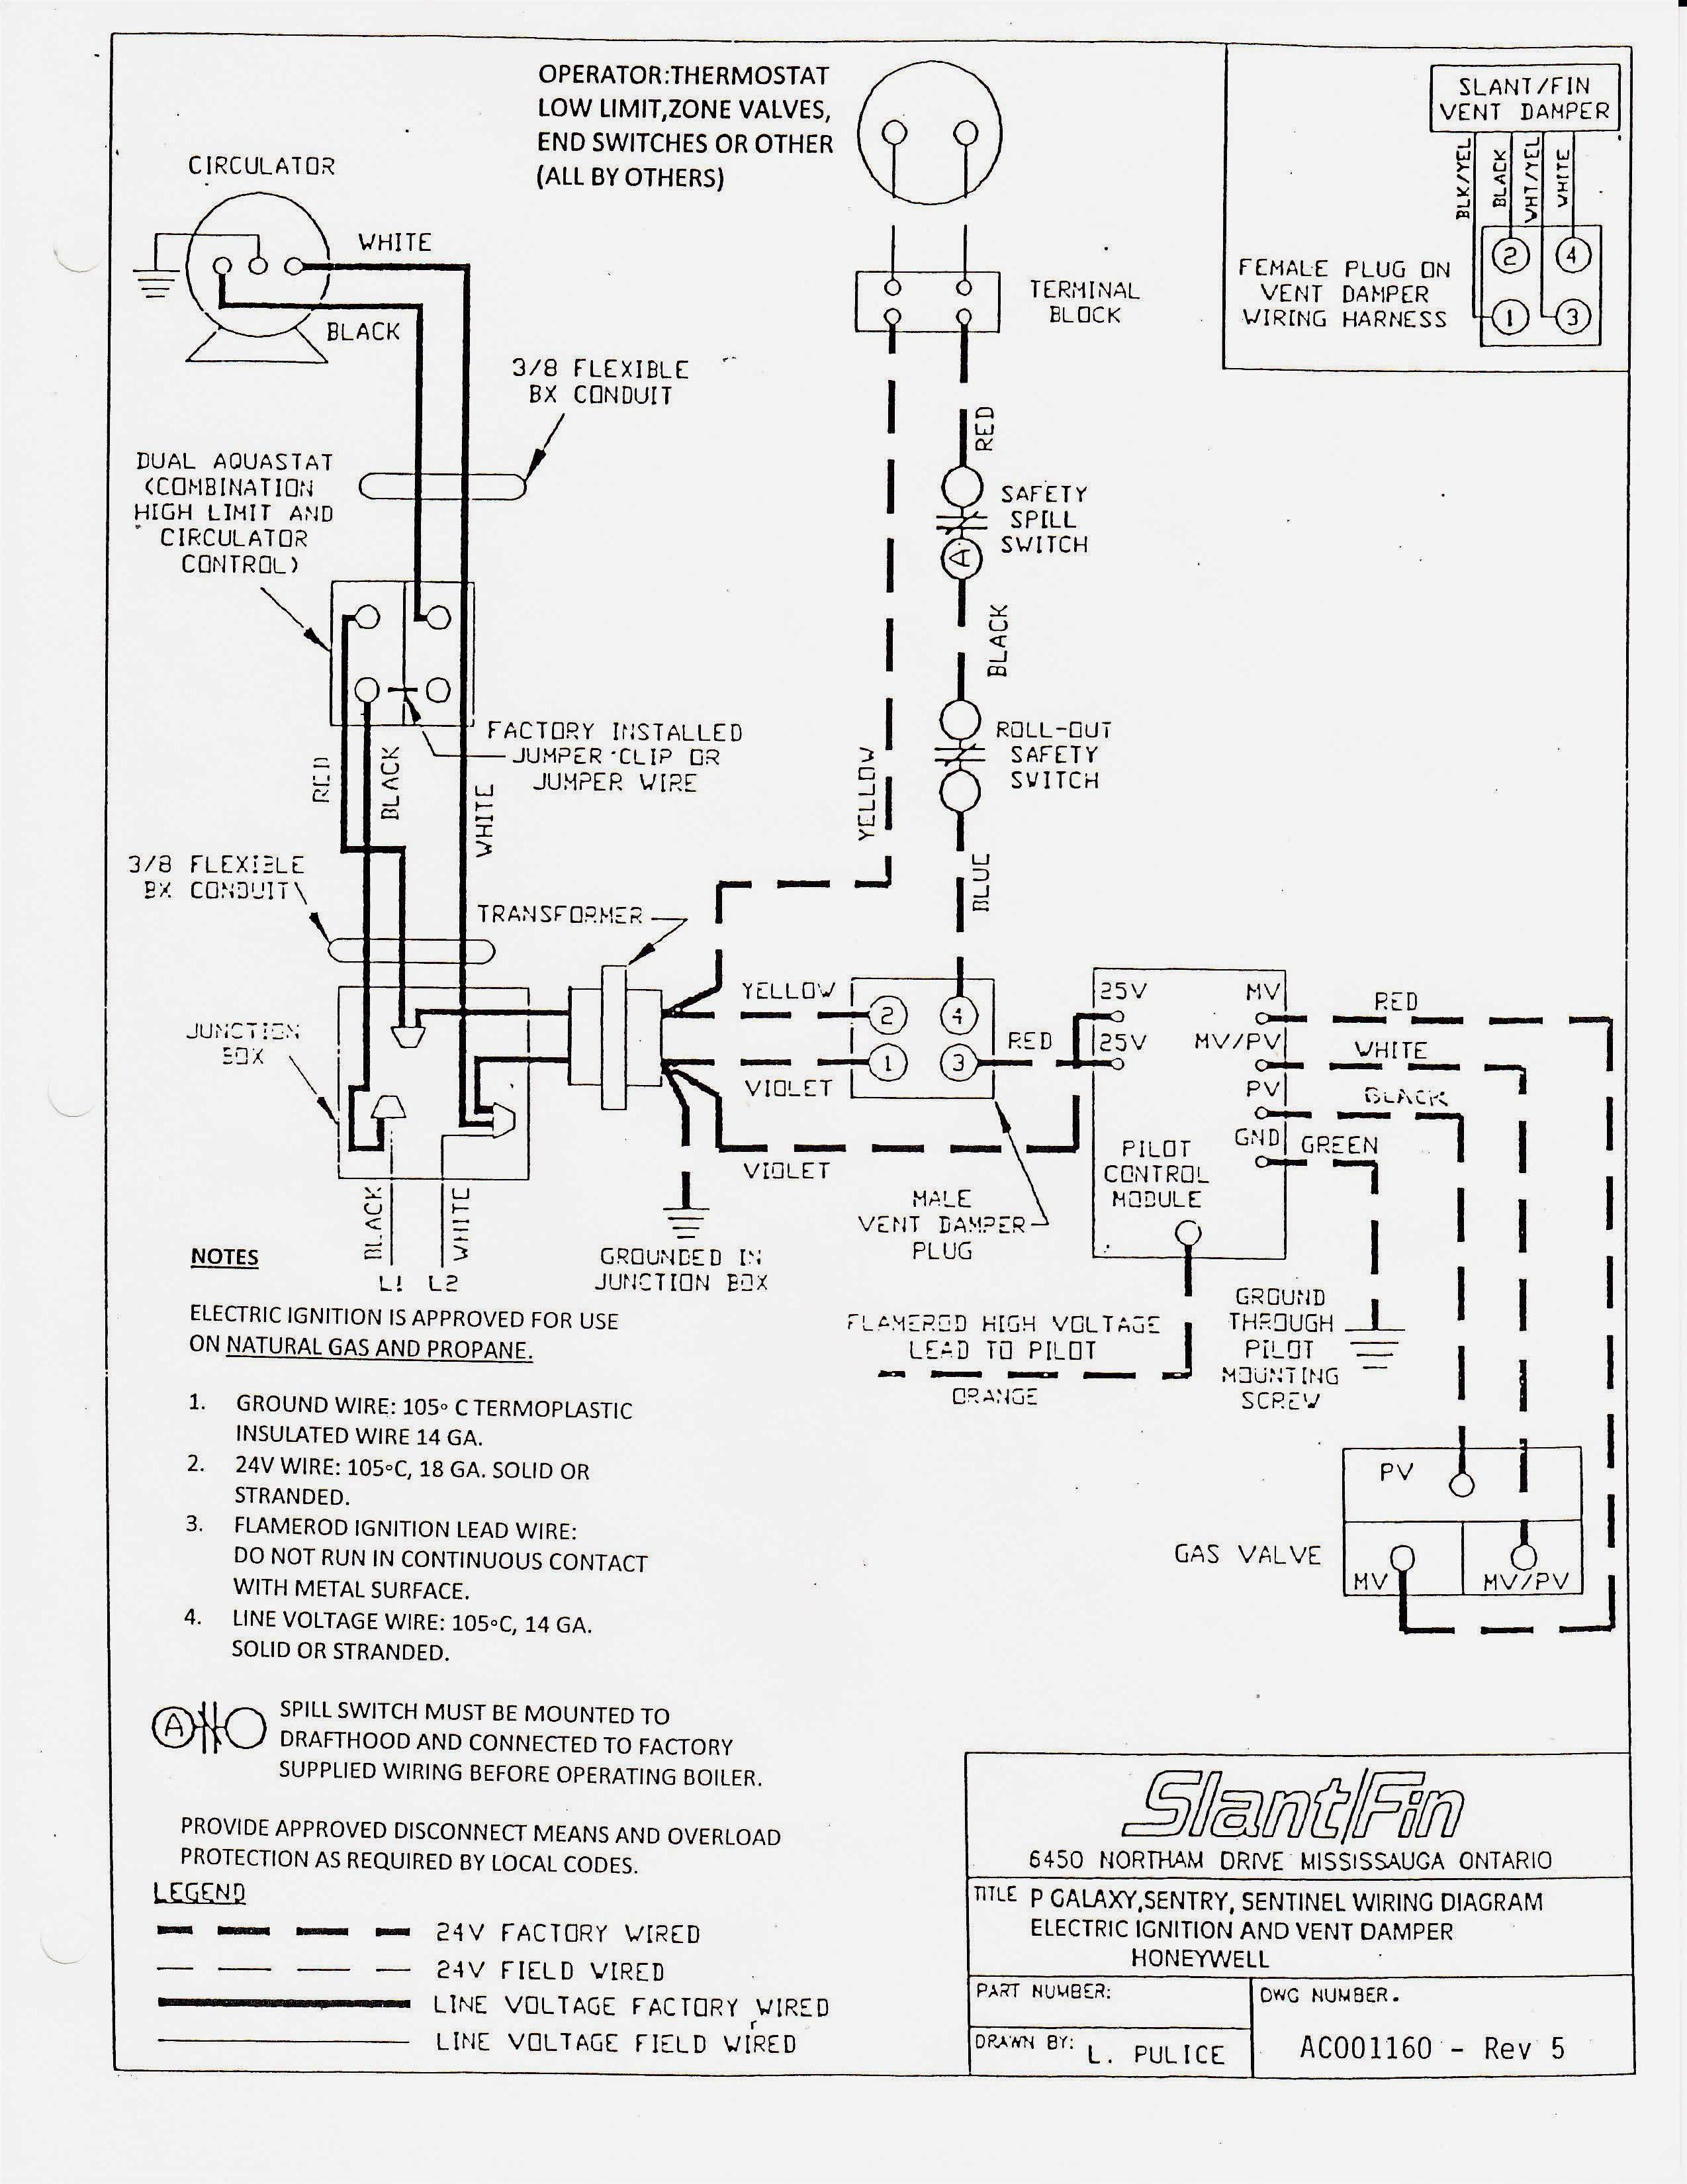 Ecobee4 Wiring Diagram Gallery Sample Ecobee Smart Thermostat Installation